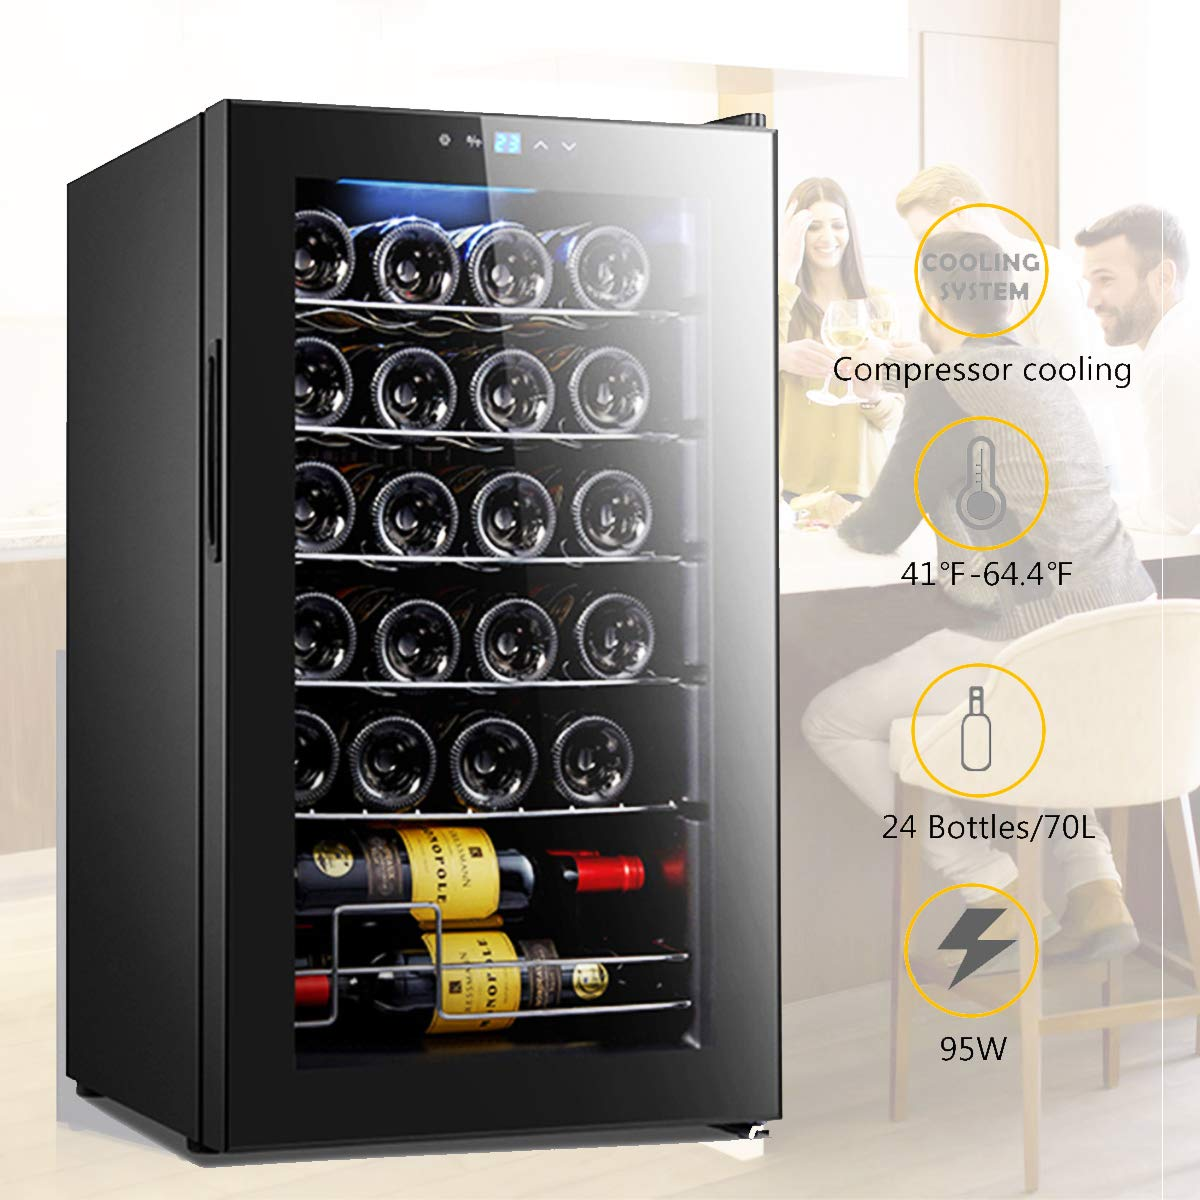 VANELL Compressor 24 Bottles Wine Cooler Refrigerator with Stainless Steel Tempered Glass Door Ultra Quiet Stable 41 -64.4 Red White Champagne Electric Chiller Touch Control Wine Cellar